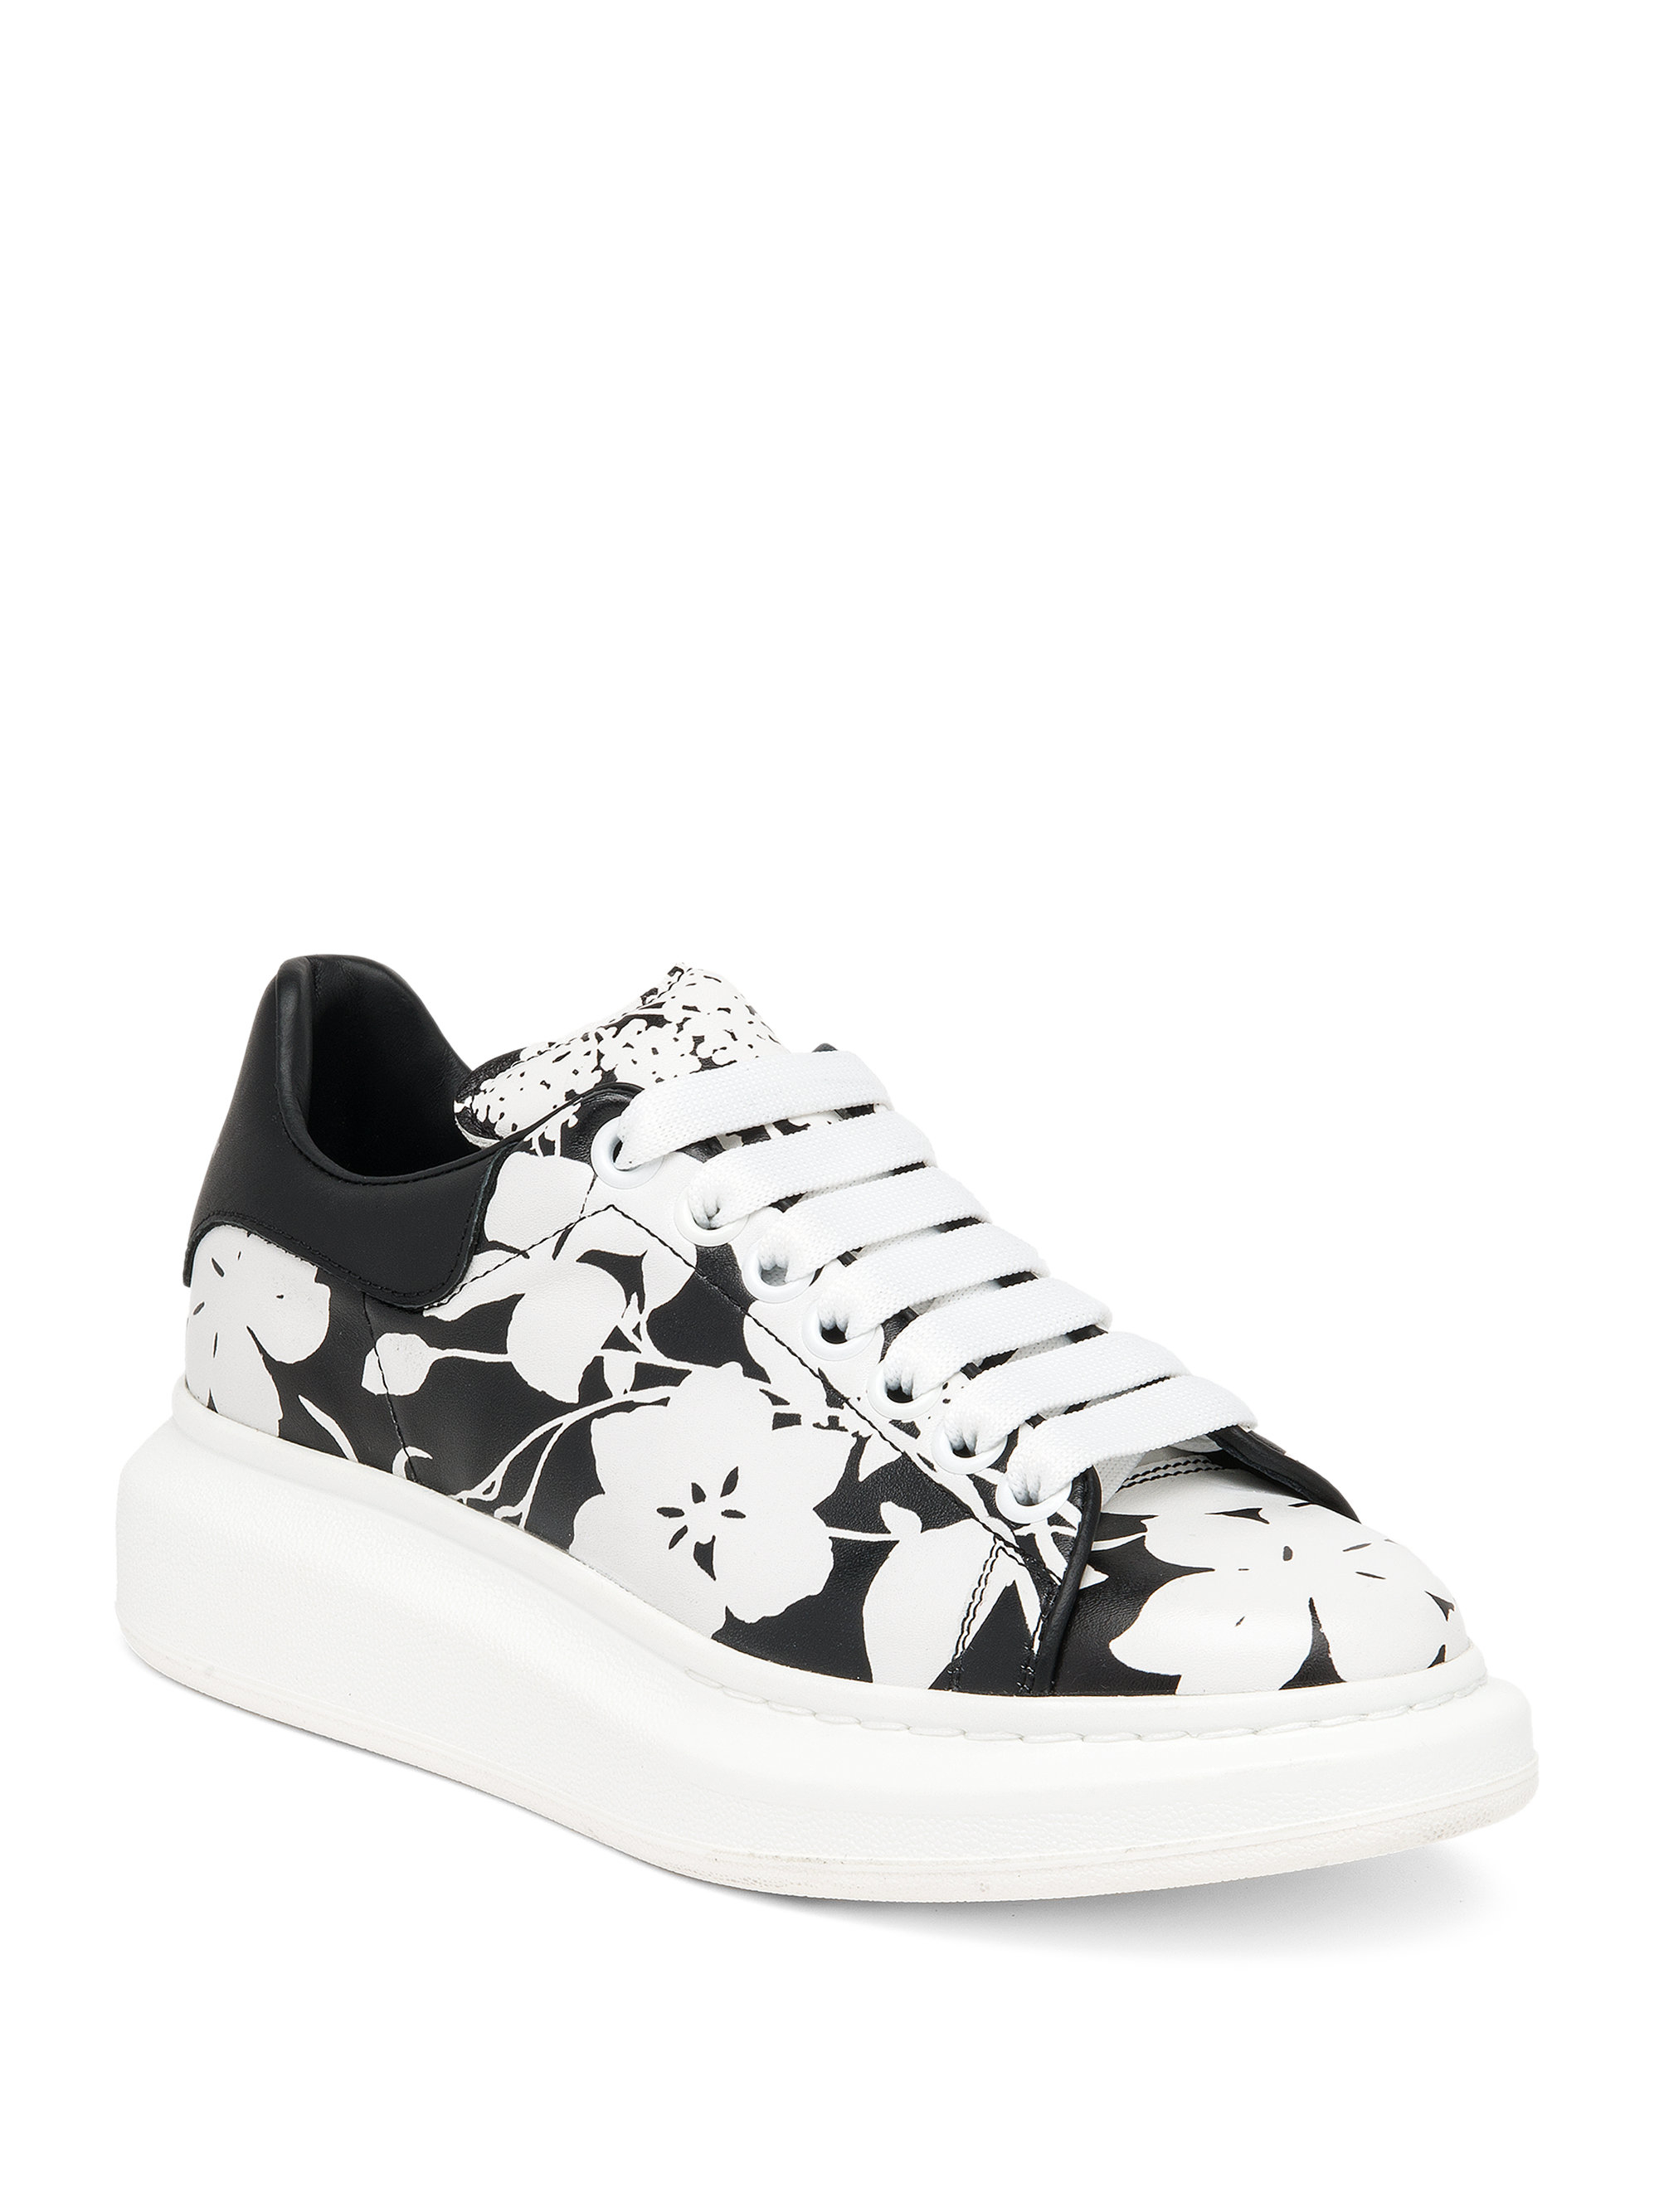 d71fb197cfc8 Lyst - Alexander McQueen Floral-print Leather Platform Sneakers in Black